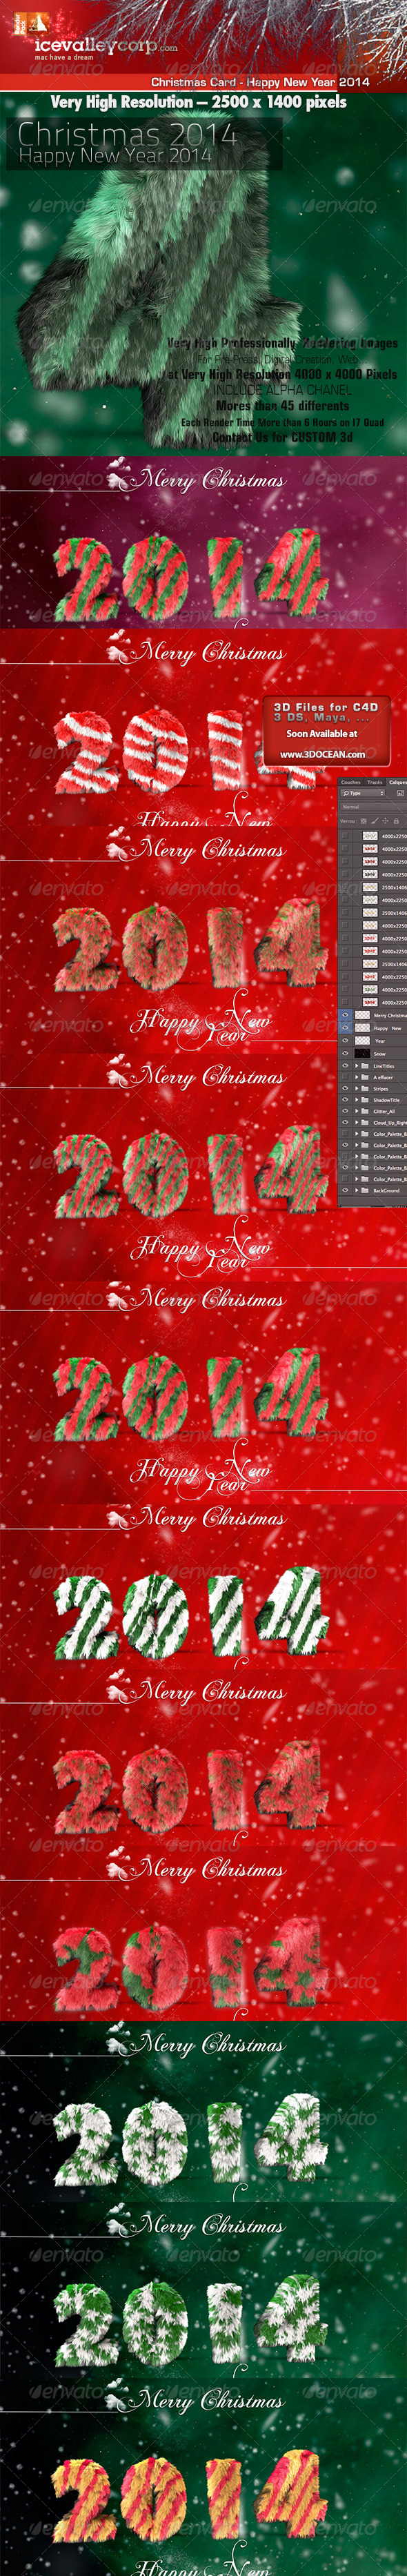 Greetings Merry Christmas-Happy New Year 2014 - Graphics